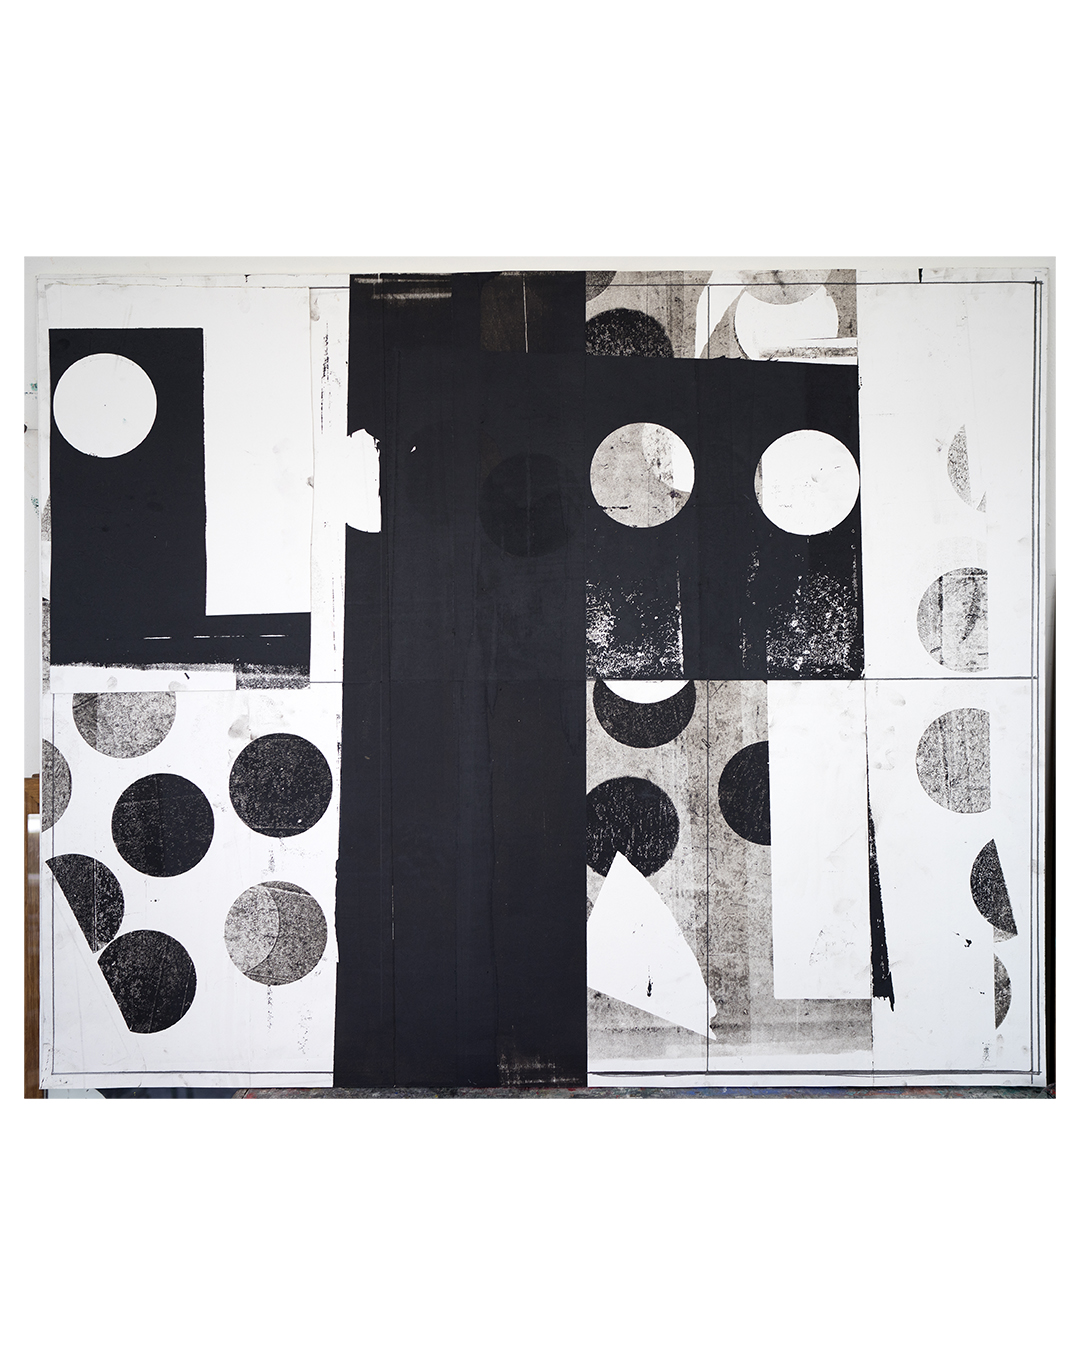 Piet Dieleman, untitled, 2020, collage, oil-based monotype ink, pencil, acrylic binder on paper, 1290 x 1590 mm, €3270